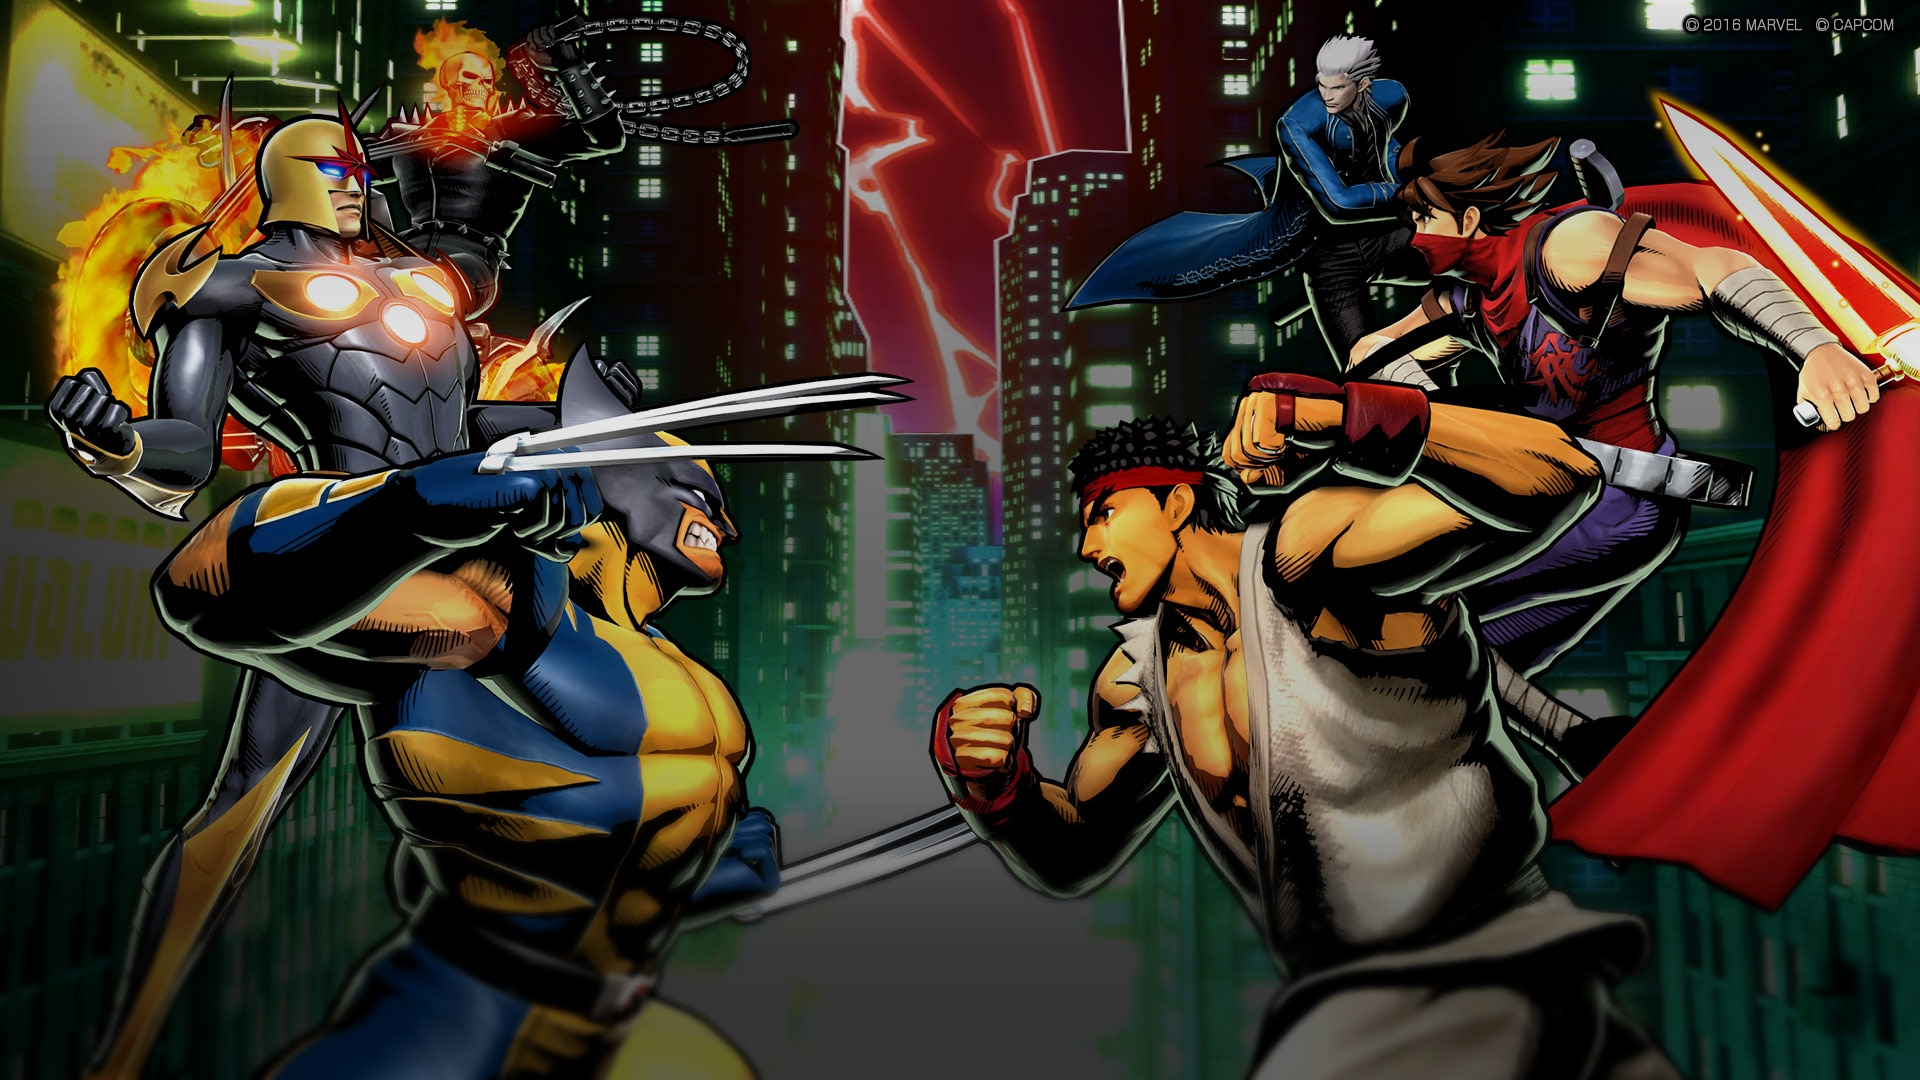 ULTIMATE MARVEL VS. CAPCOM 3 (English/Japanese Ver.)